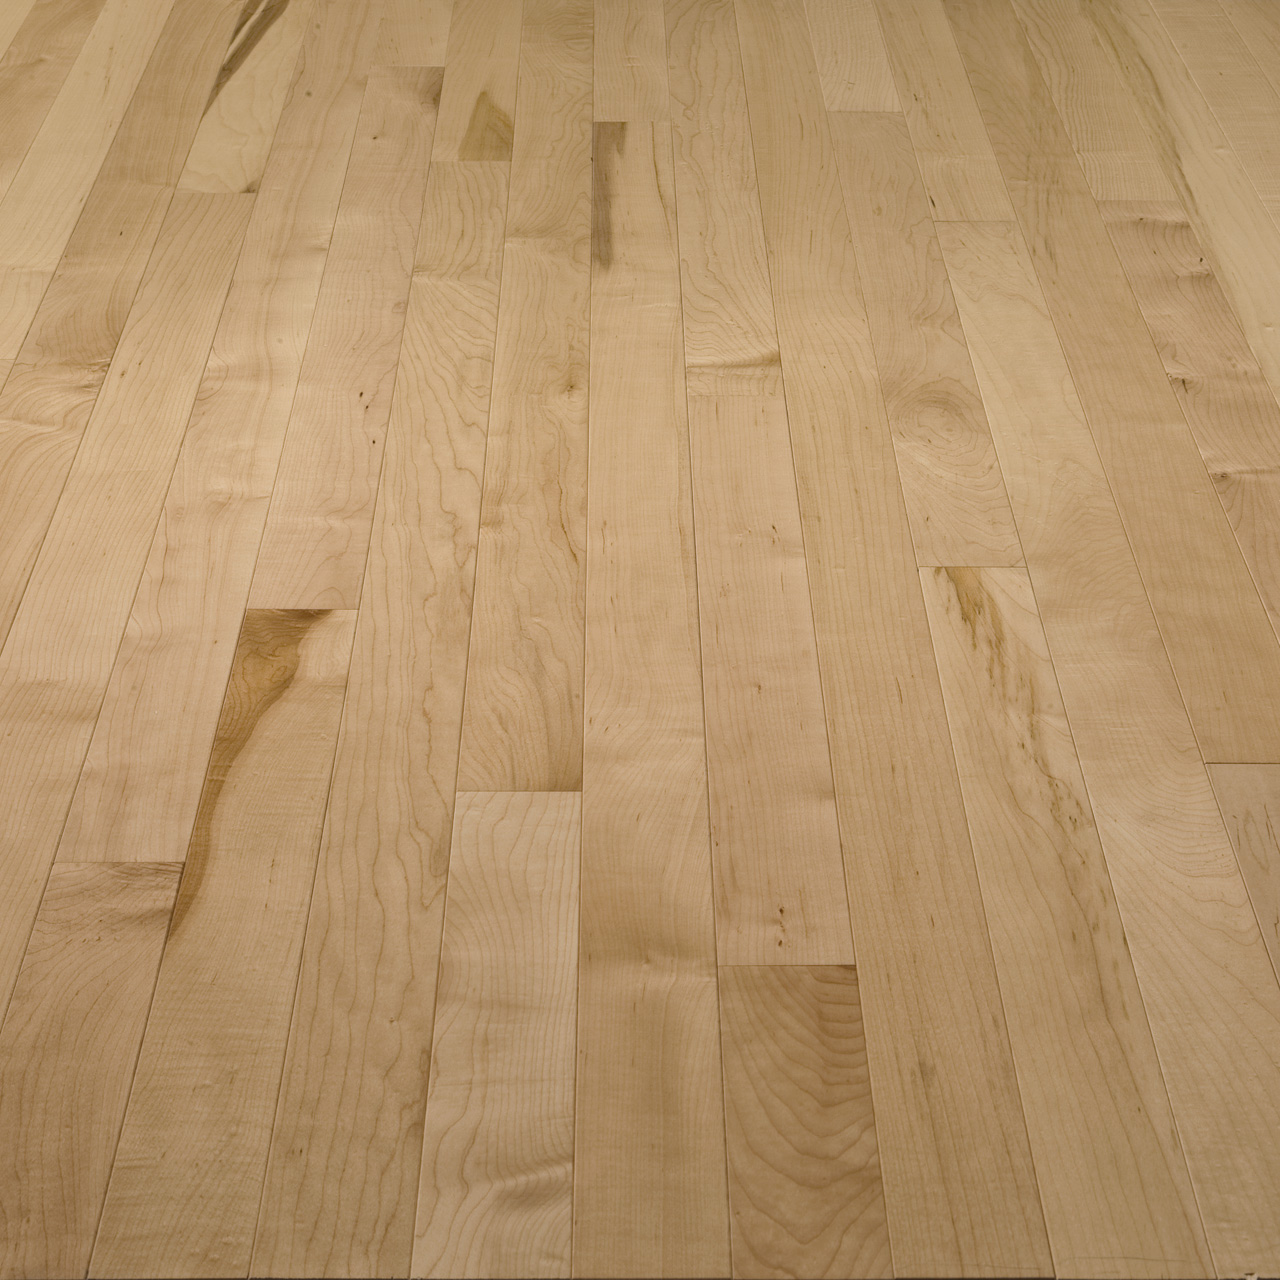 Natural Maple Entranceway By Mullican Flooring Www: HARD MAPLE, NATURAL